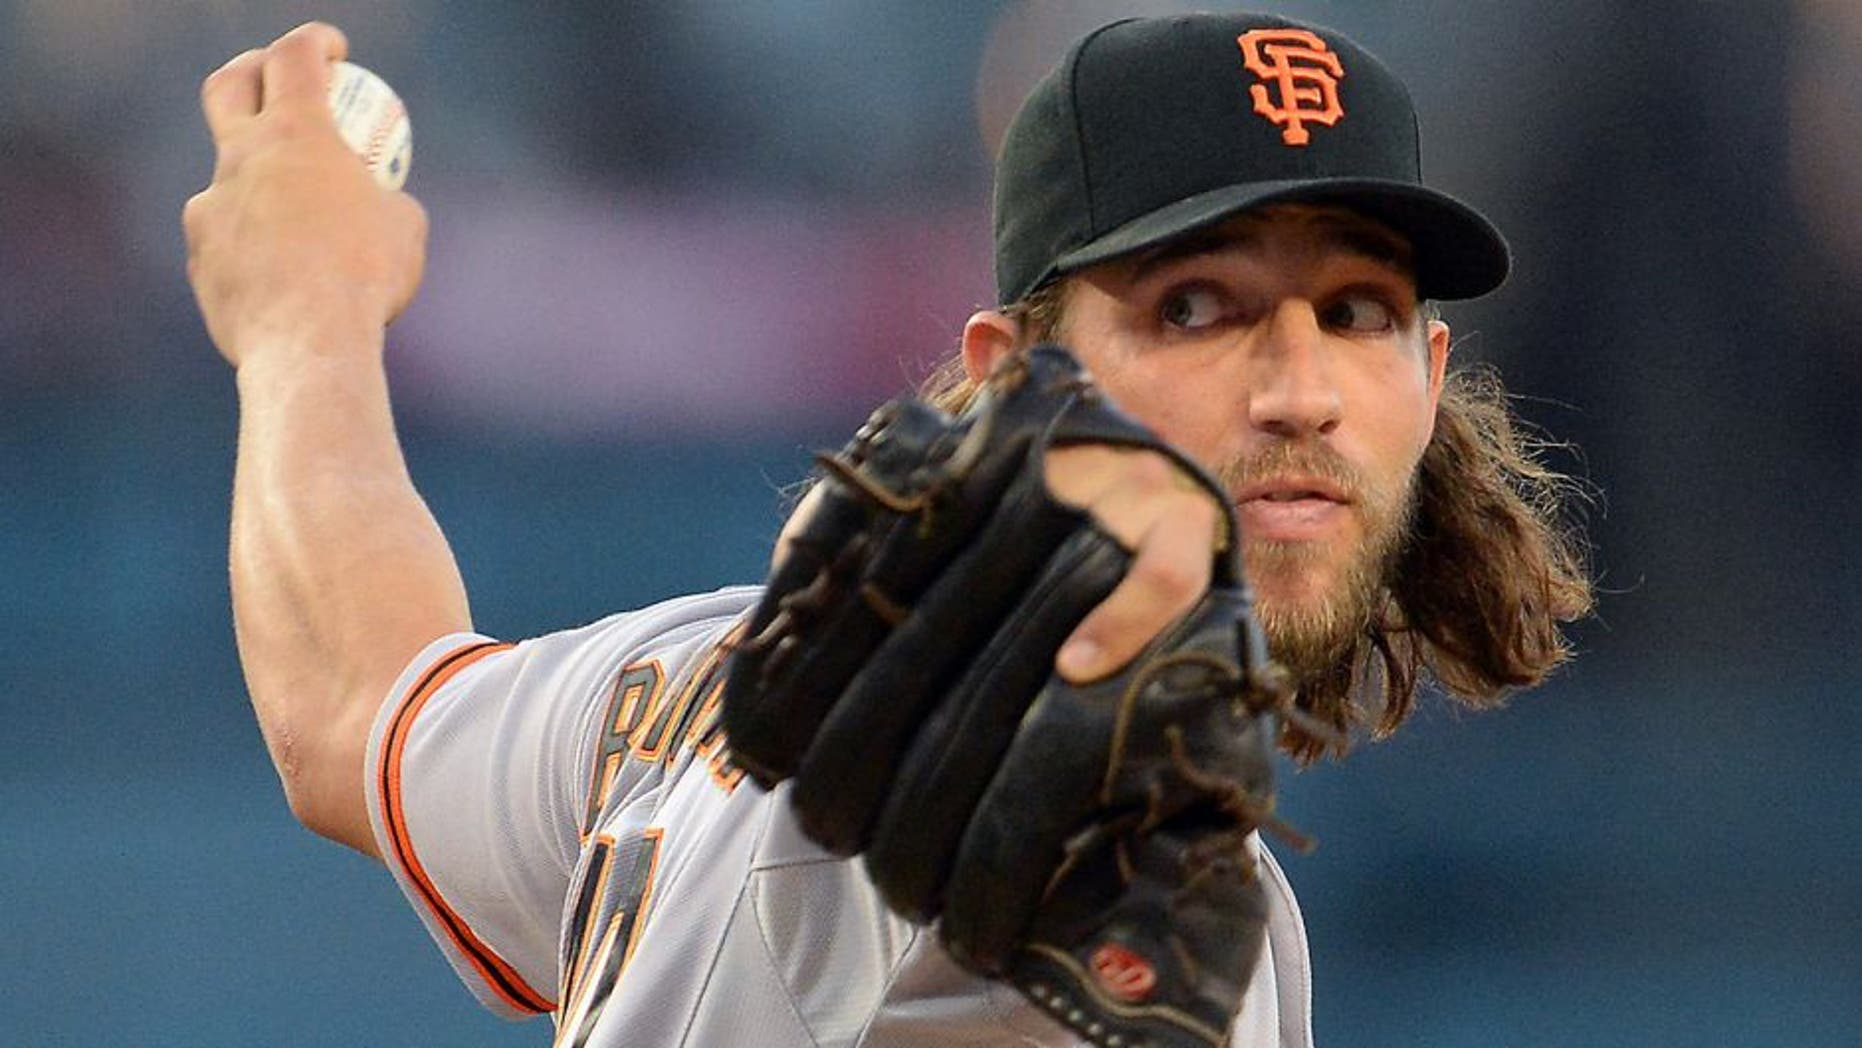 Apr 28, 2015; Los Angeles, CA, USA; San Francisco Giants starting pitcher Madison Bumgarner (40) throws in the first inning against the Los Angeles Dodgers at Dodger Stadium. Mandatory Credit: Jayne Kamin-Oncea-USA TODAY Sports